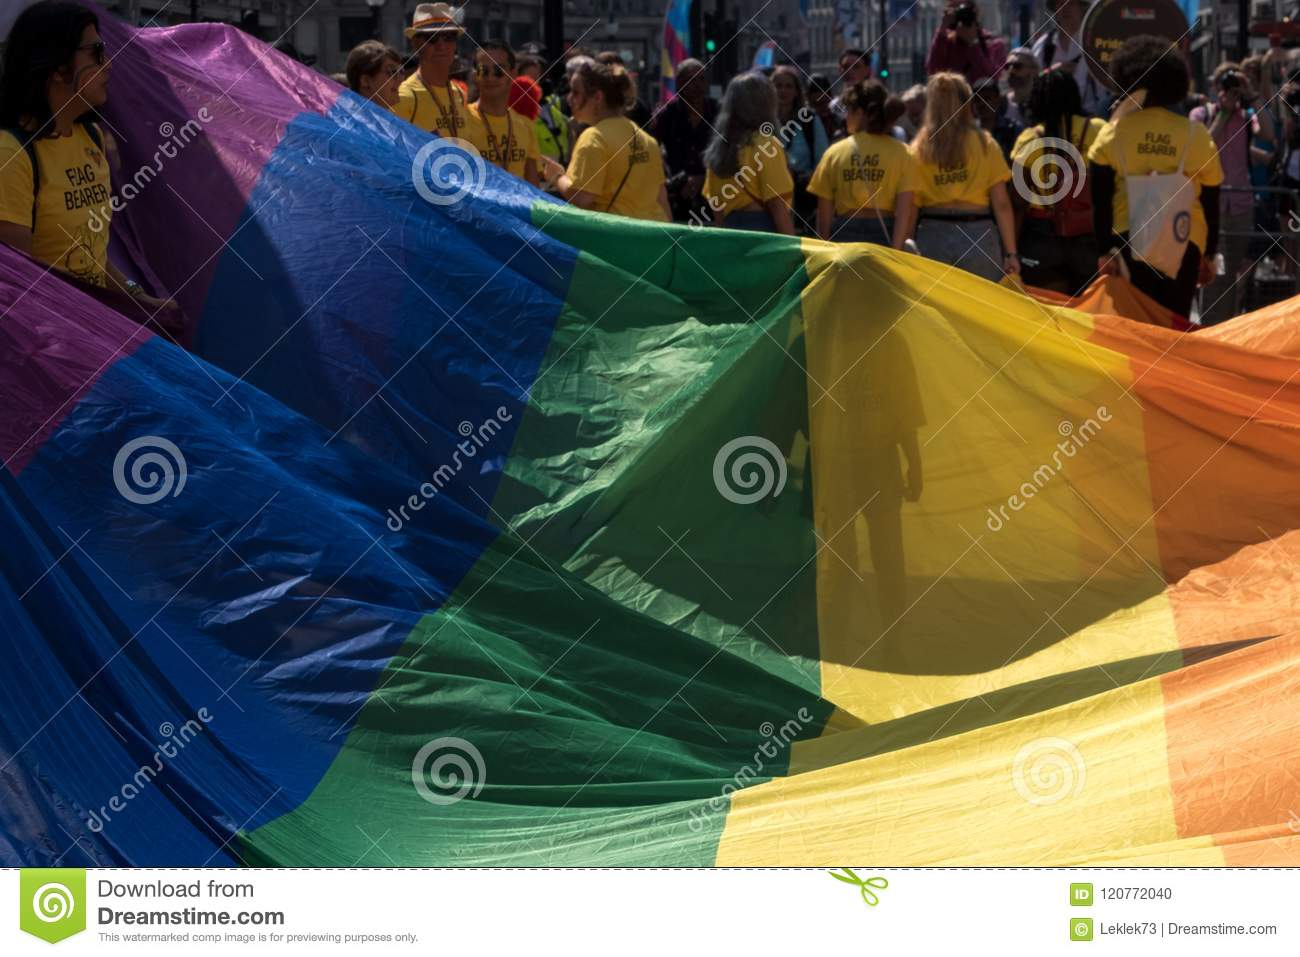 Giant rainbow flag at the GayFest pride parade